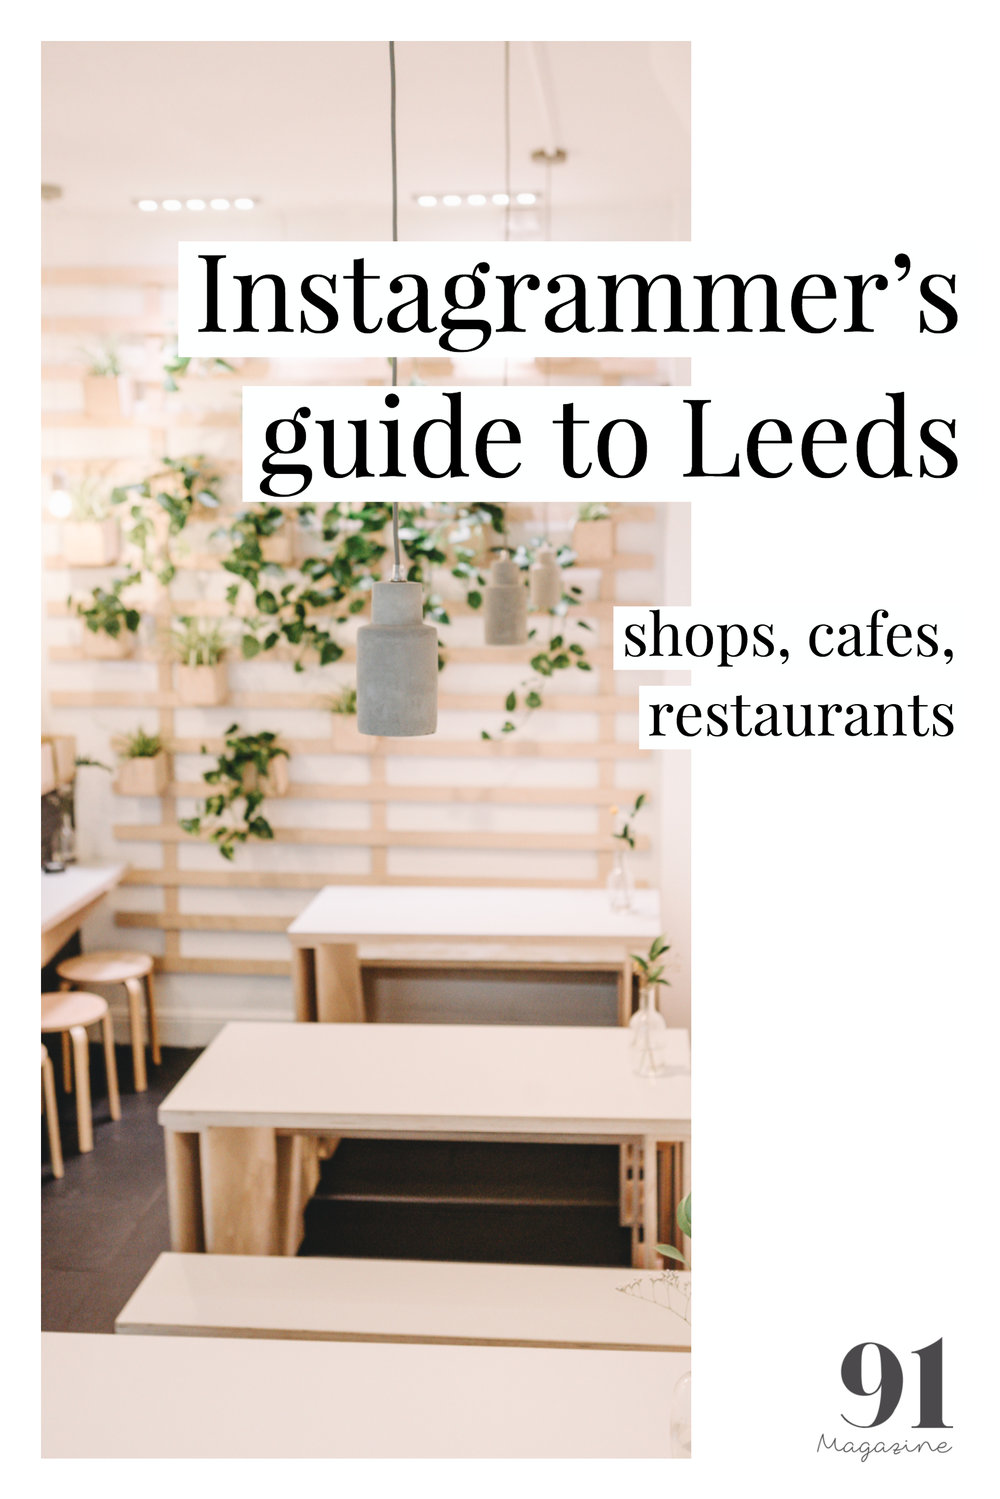 Instagrammer's guide to Leeds